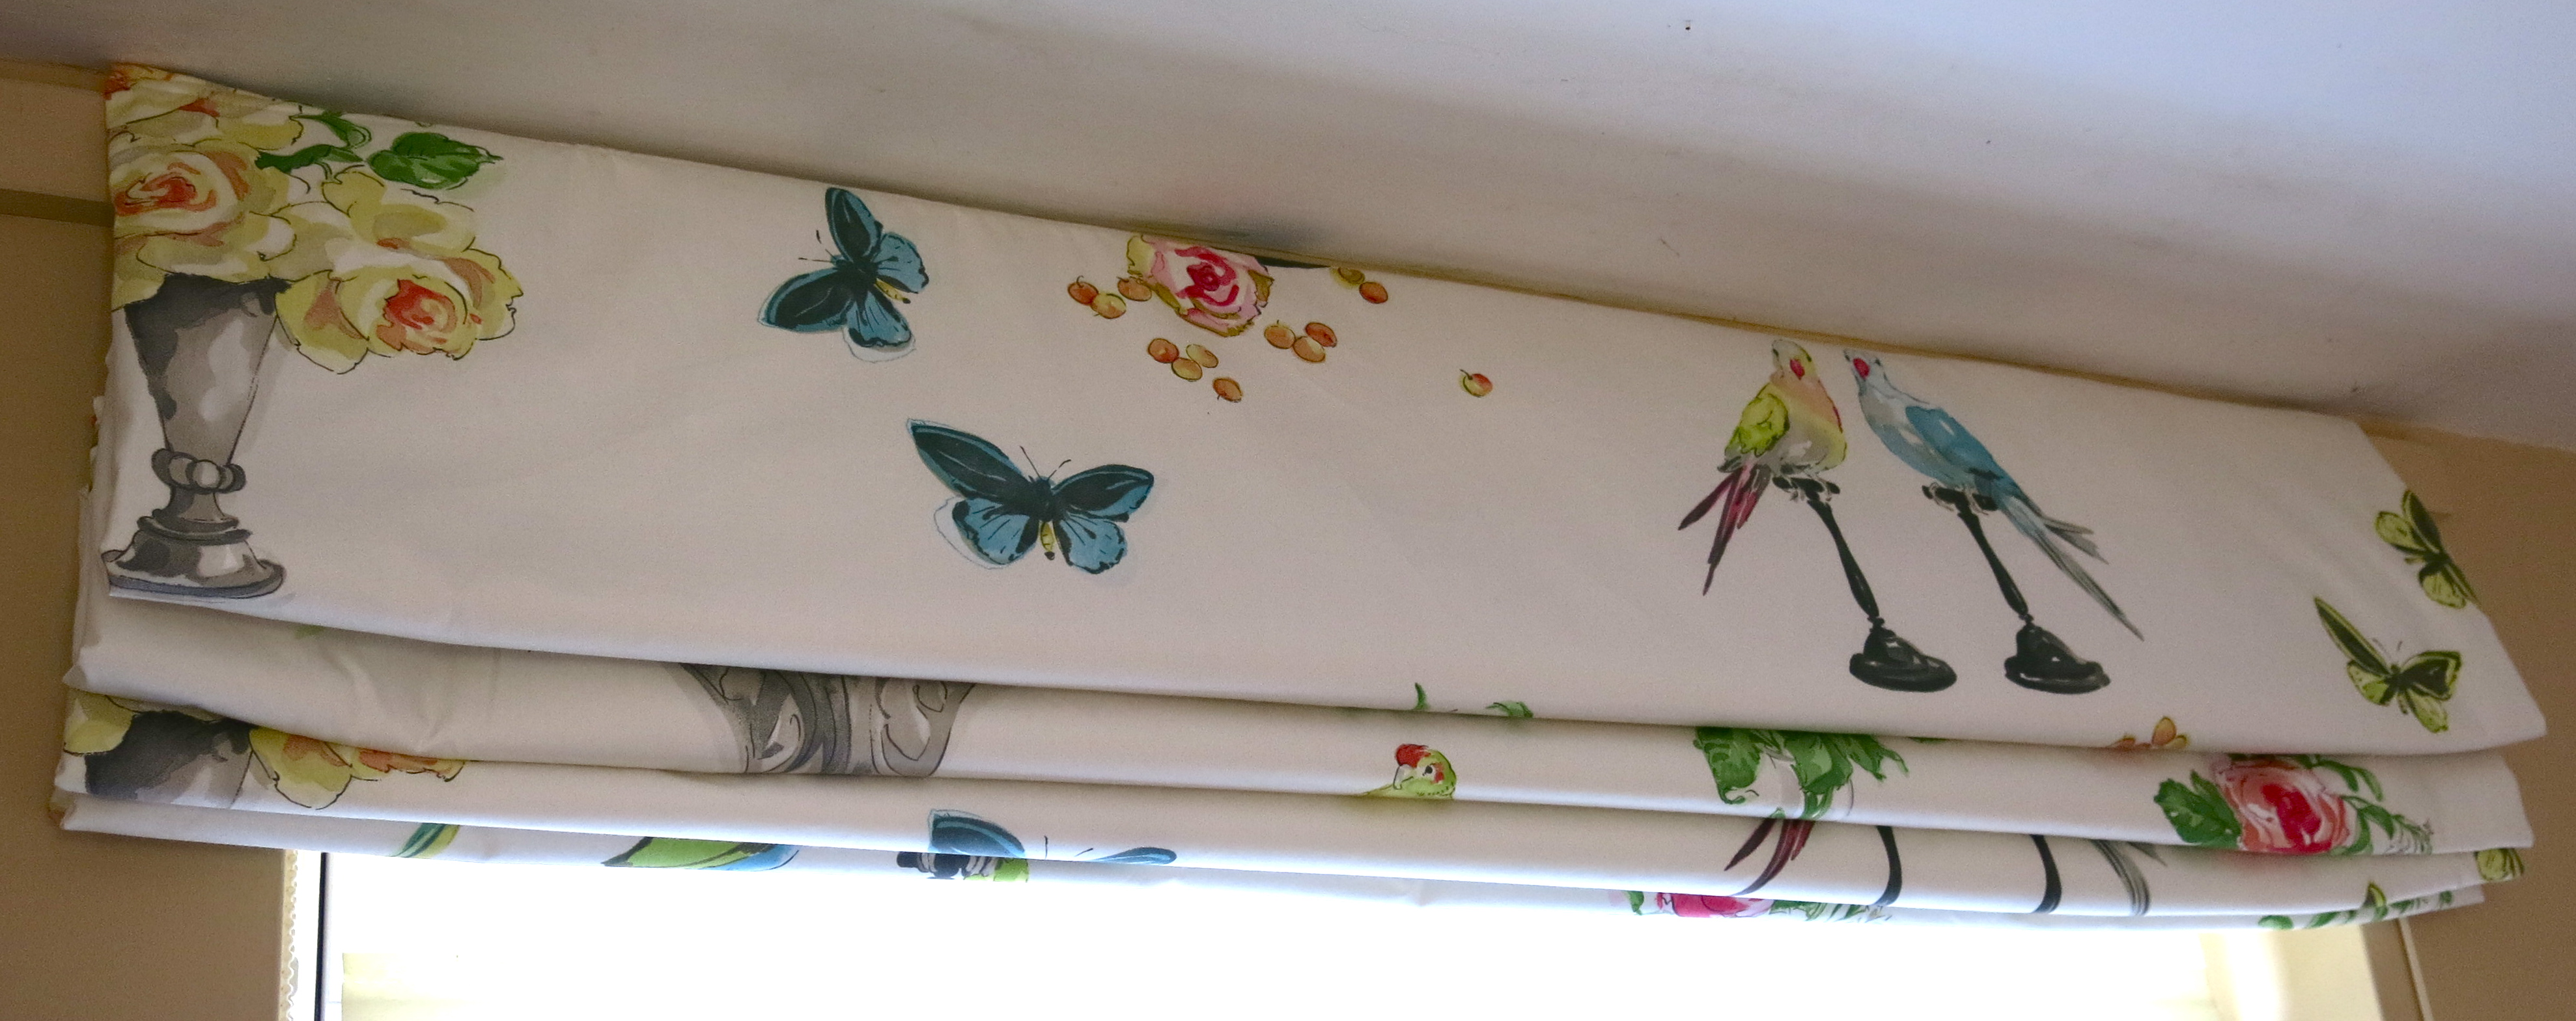 Roman Blind Diy How To Make A Roman Blind Archives Lucy Loves Ya